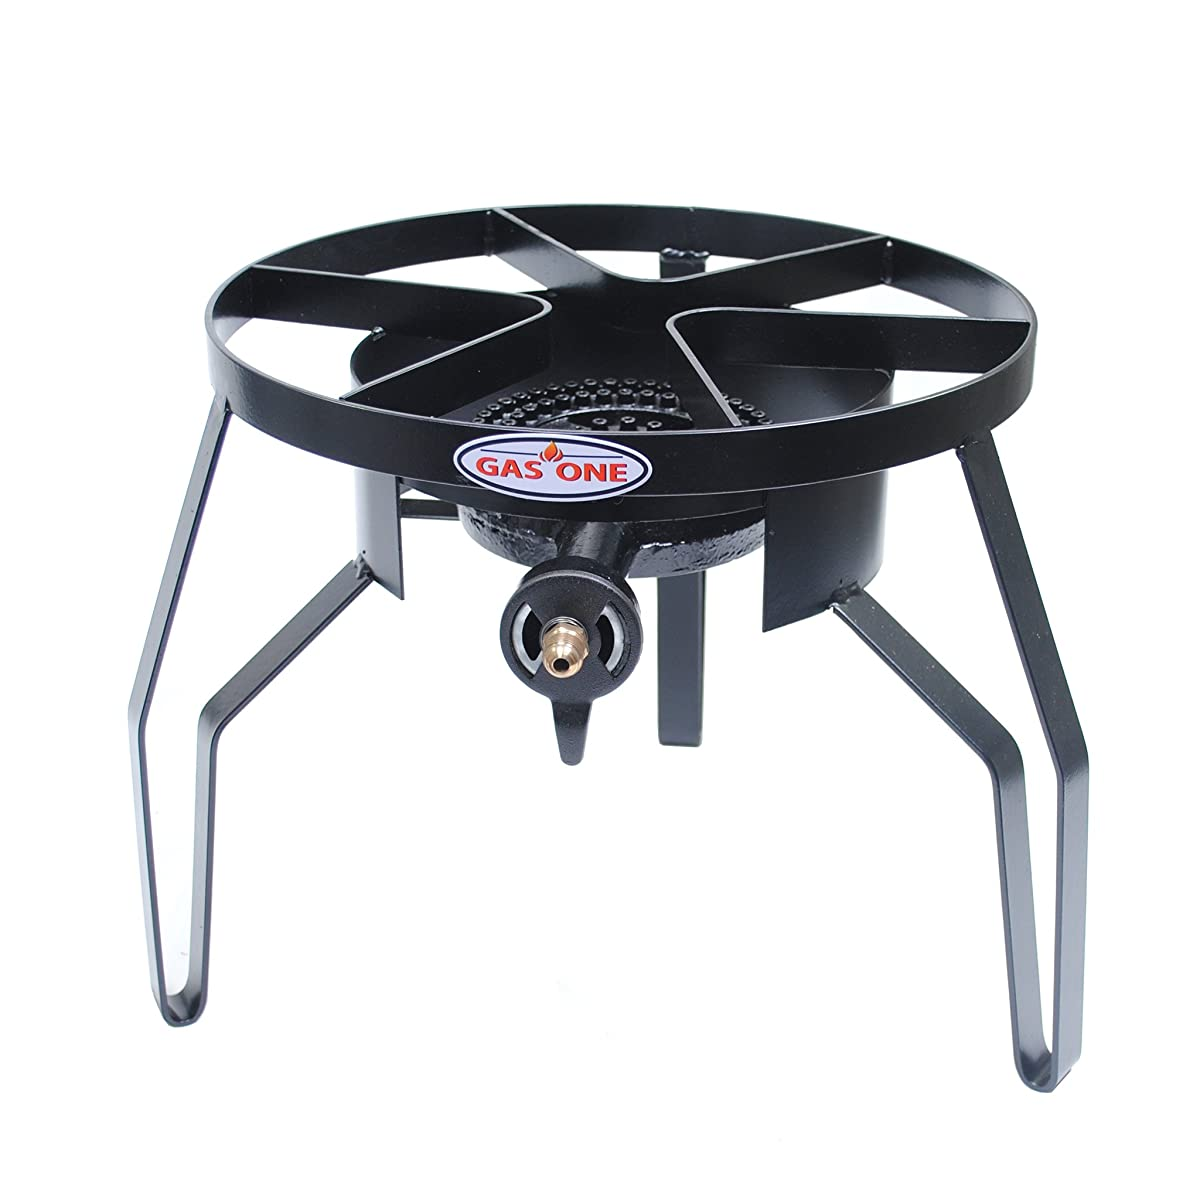 GAS ONE High-Pressure Single Burner Outdoor Stove Propane Gas Cooker with Adjustable 0-20PSI CSA Listed Regulator and Hose Perfect for Beer Brewing, outdoor cooking, emergency preparedness